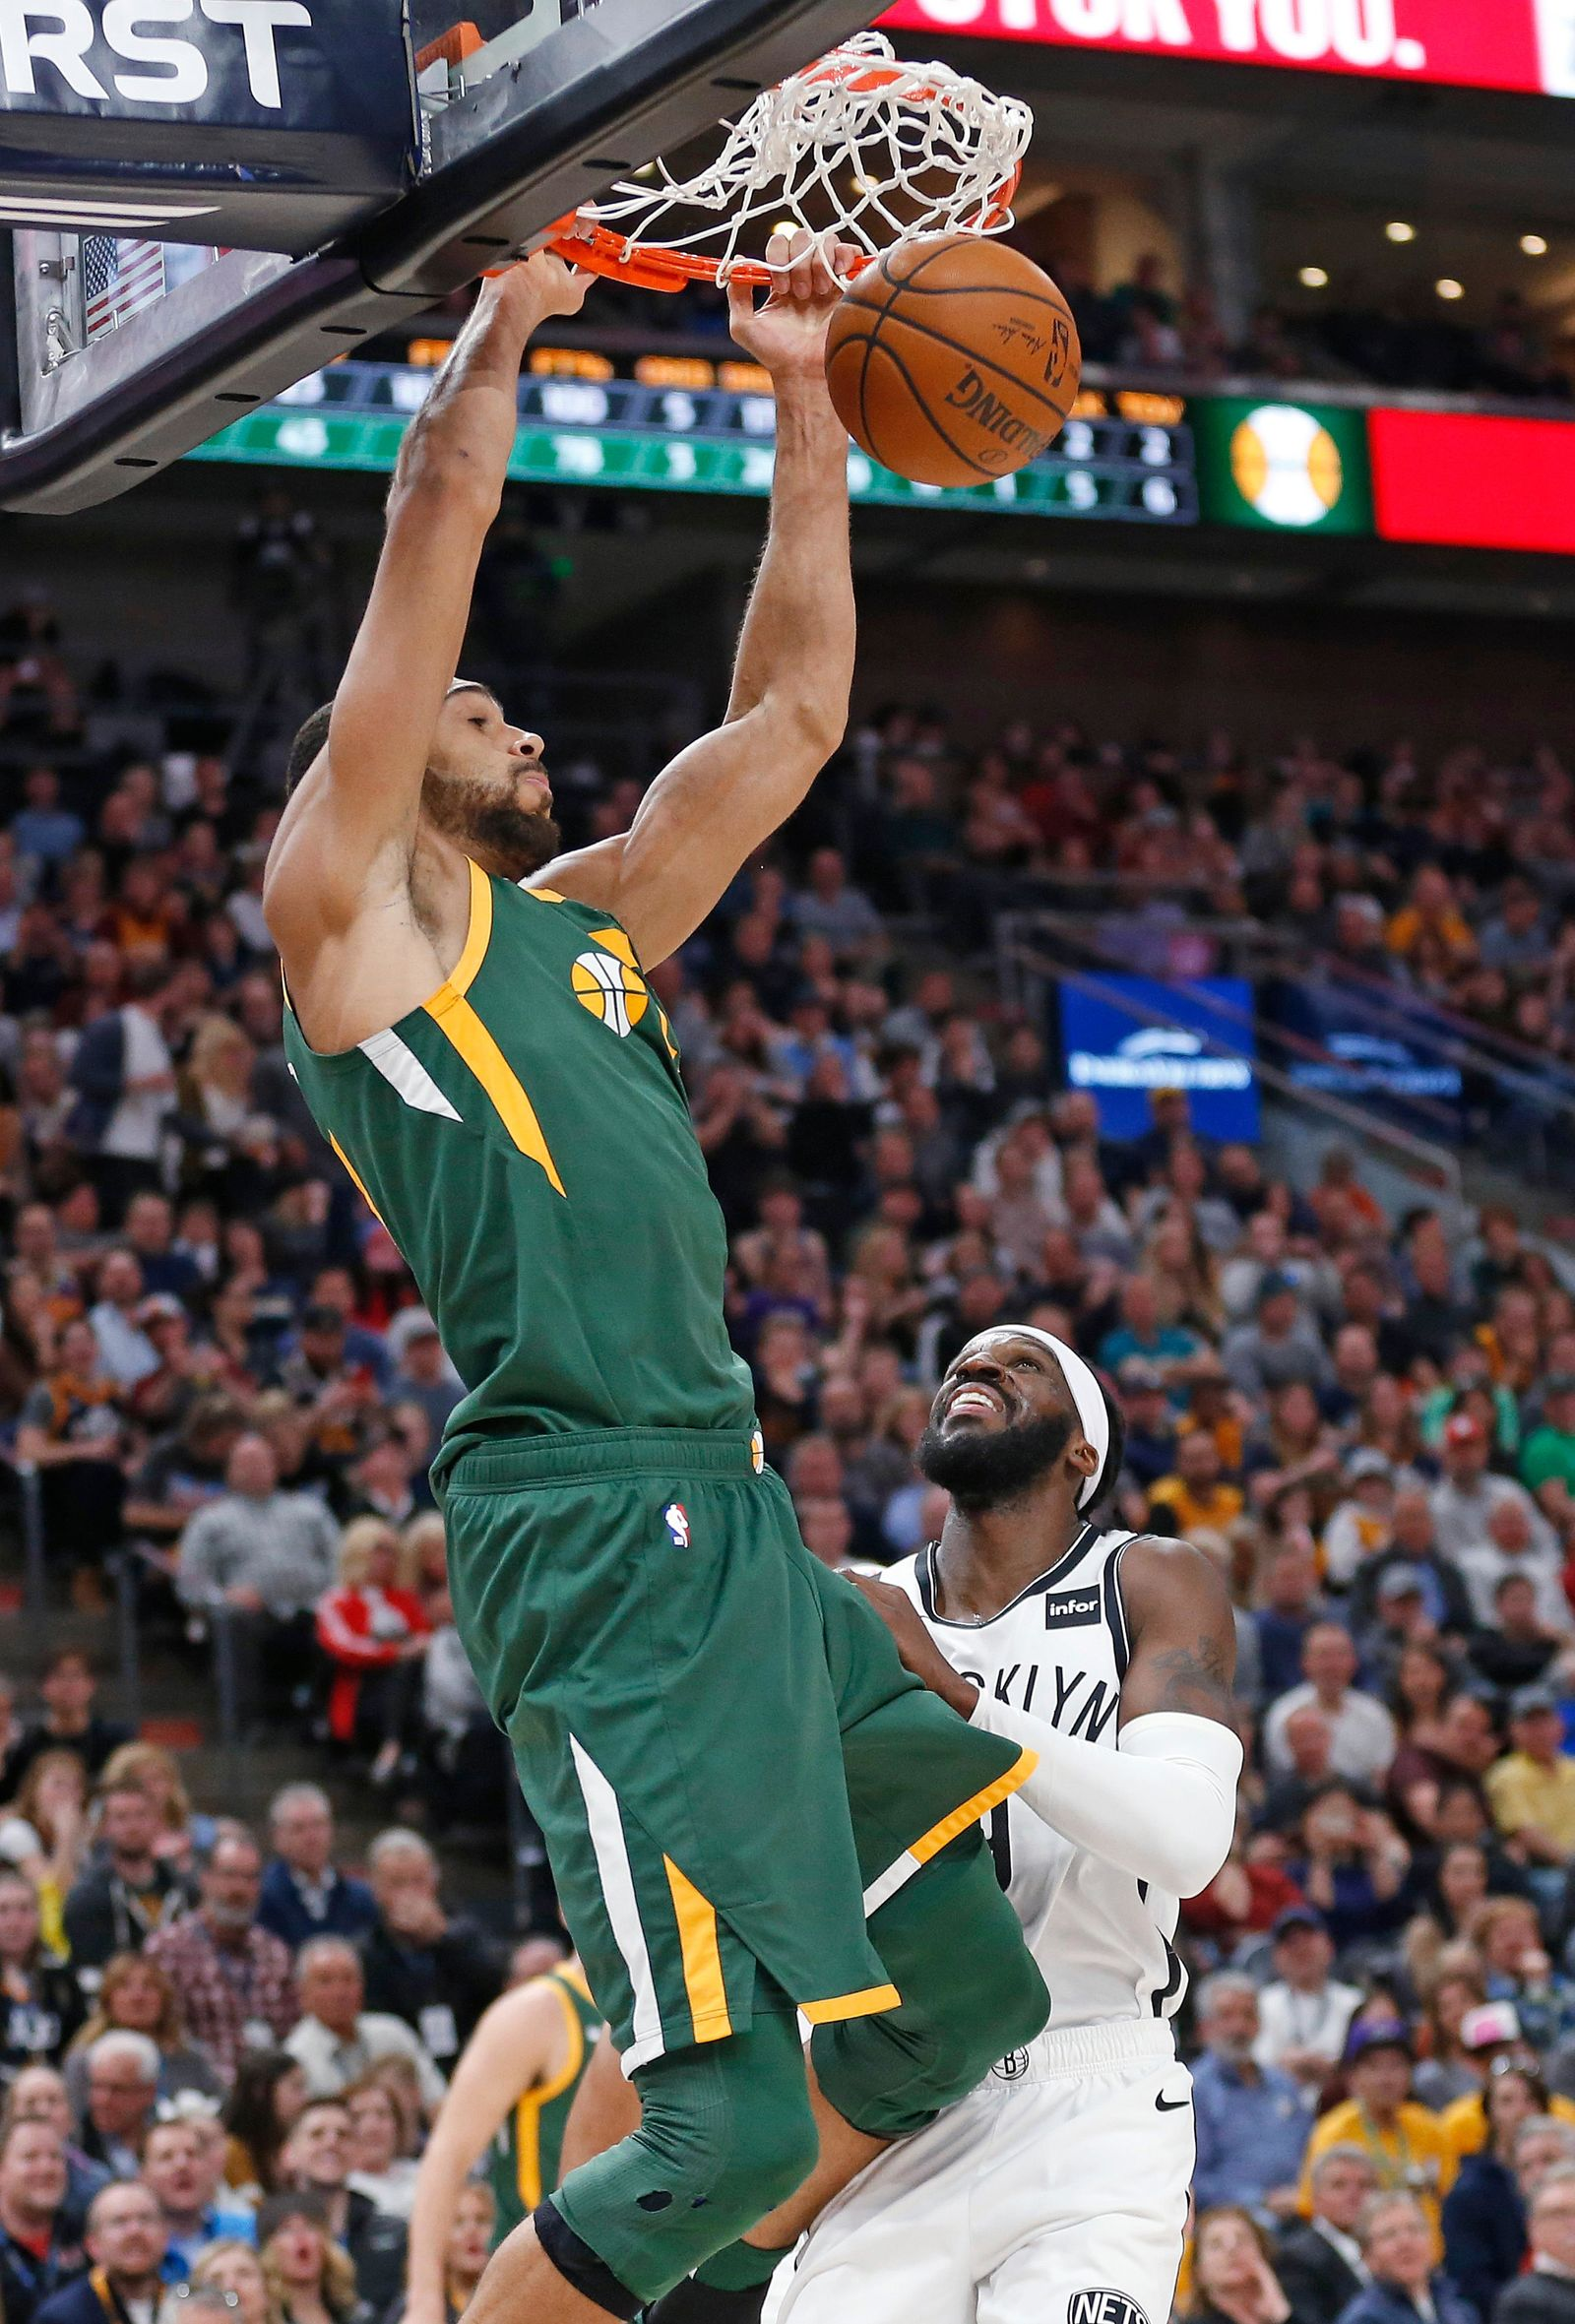 Utah Jazz center Rudy Gobert, left, dunks as Brooklyn Nets forward DeMarre Carroll, rear, looks during the first half during an NBA basketball game Saturday, March 16, 2019, in Salt Lake City. (AP Photo/Rick Bowmer)